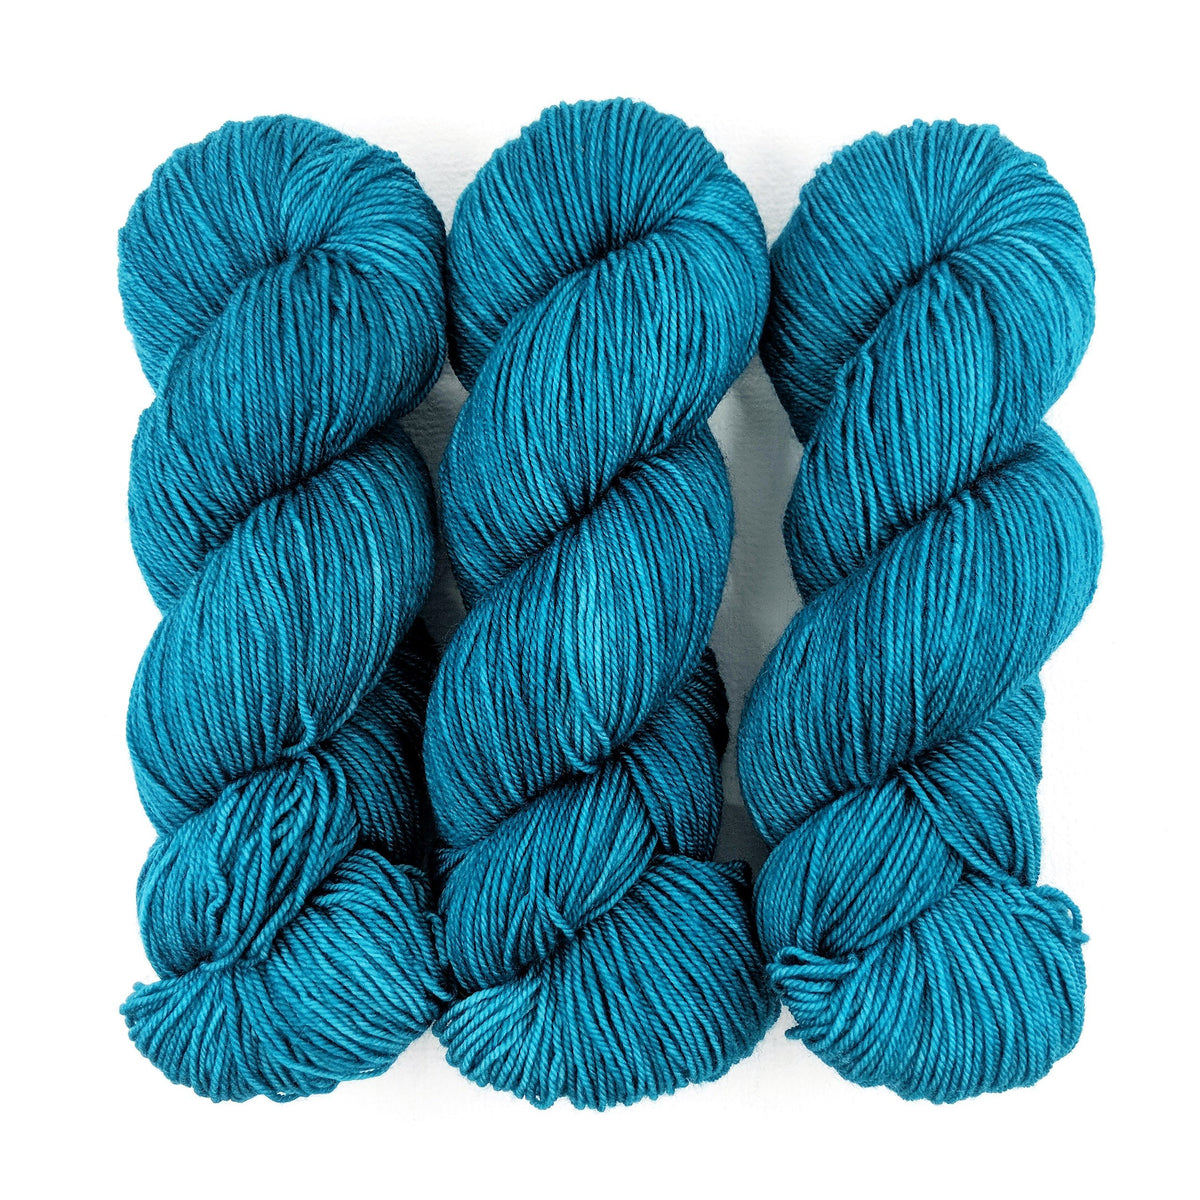 The Briny Seas - Socknado Fingering - Dyed Stock